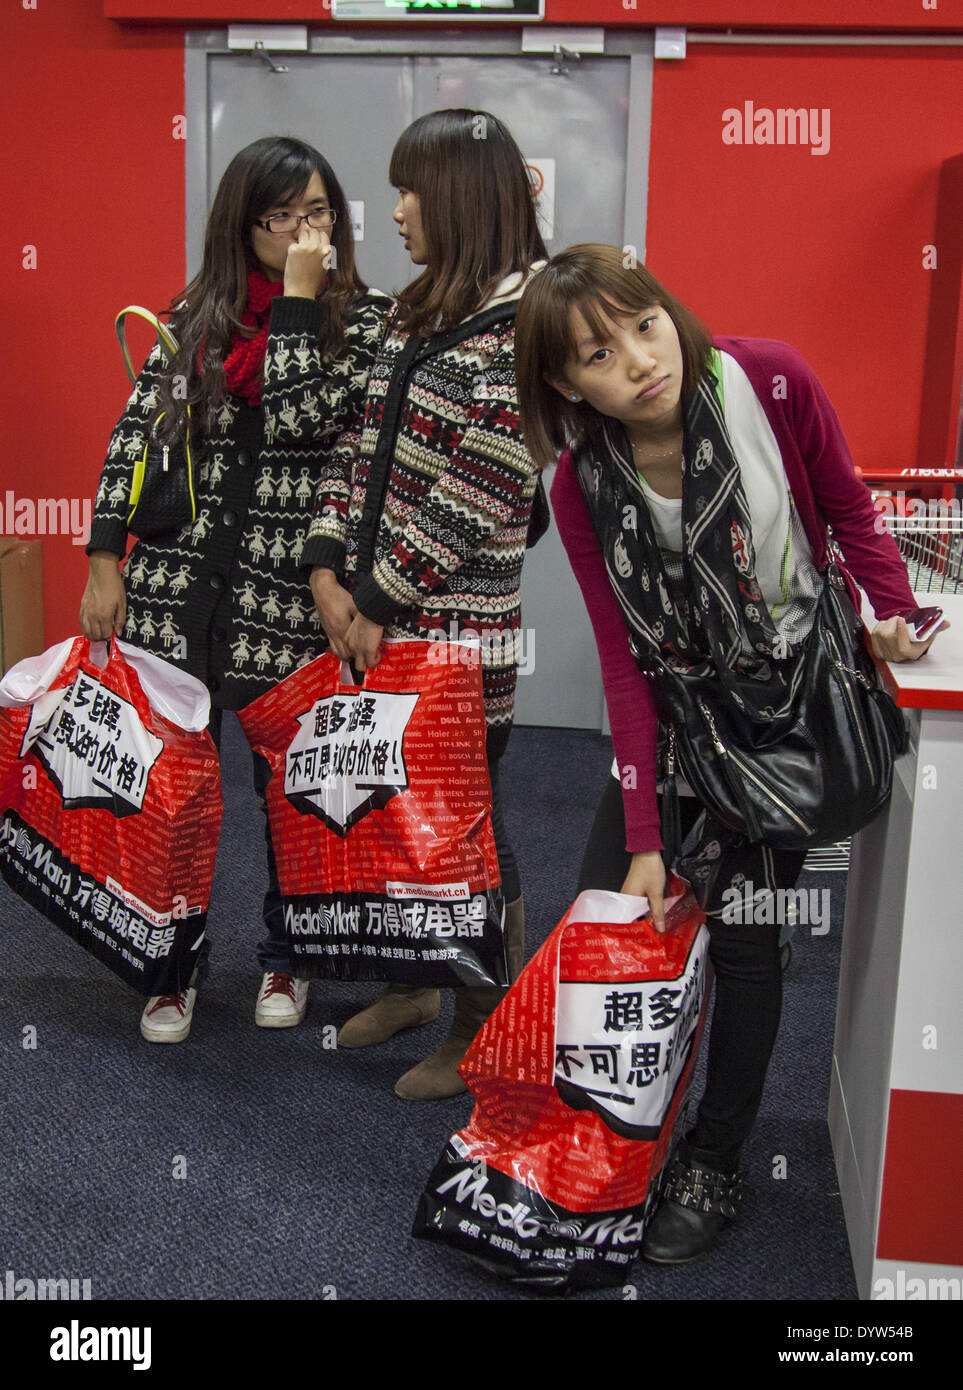 Customers carry branded shopping bag in a Media Markt store in Shanghai - Stock Image